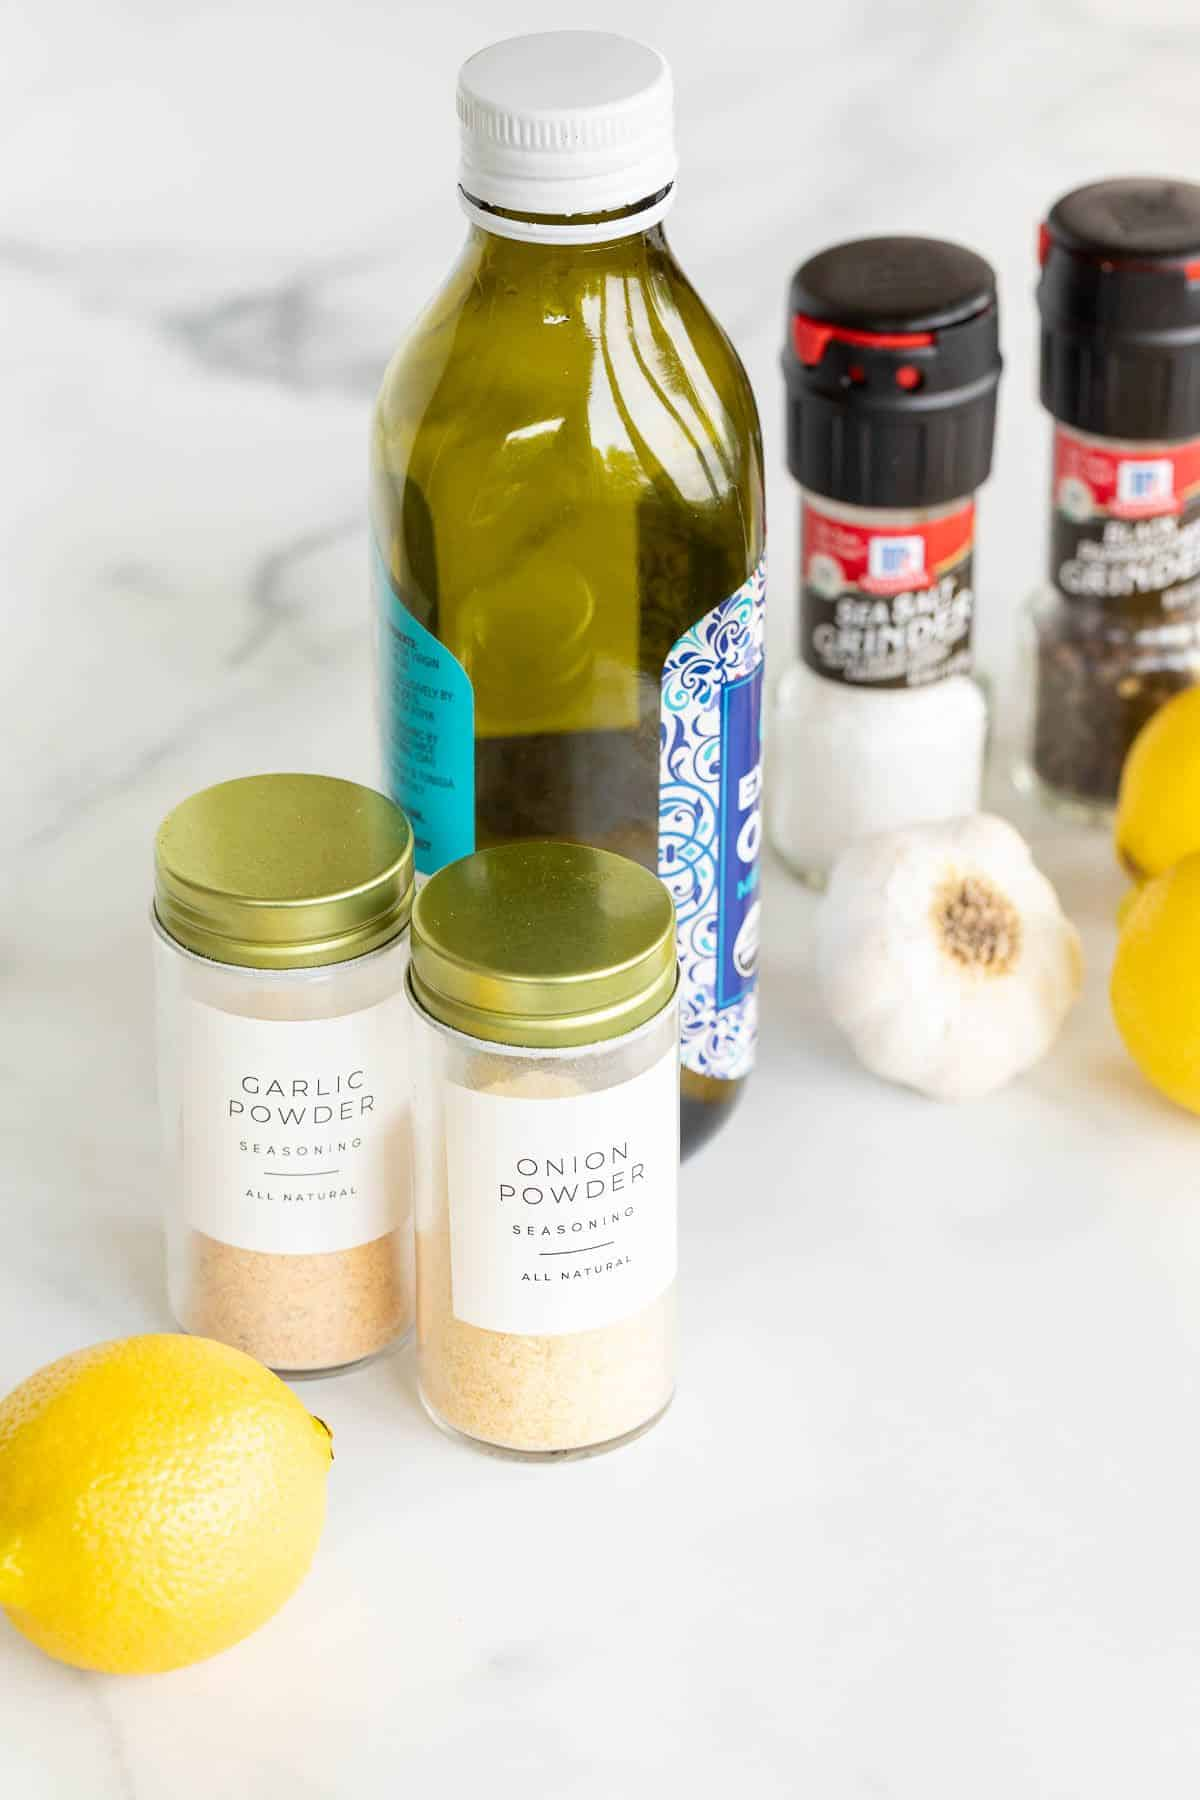 Ingredients for California chicken marinade on a white marble surface.